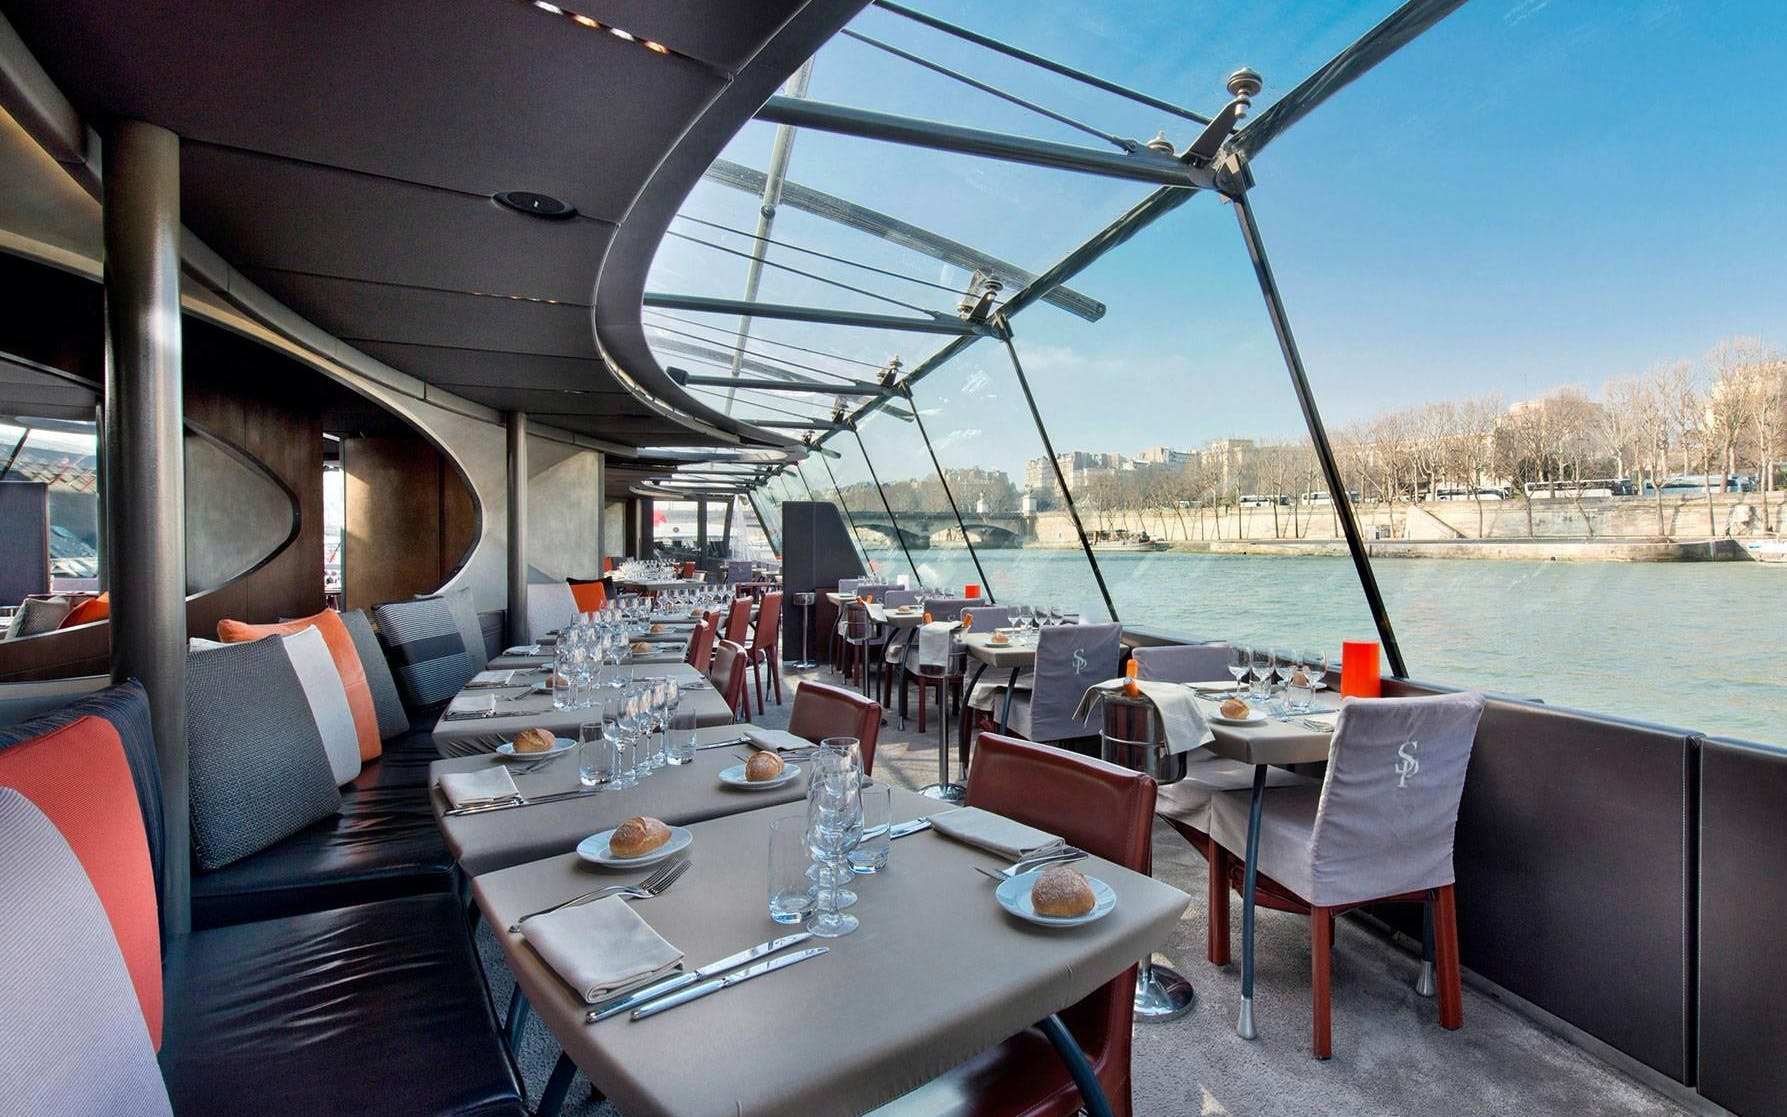 bateaux parisiens seine lunch cruise with live music & audio commentary-1